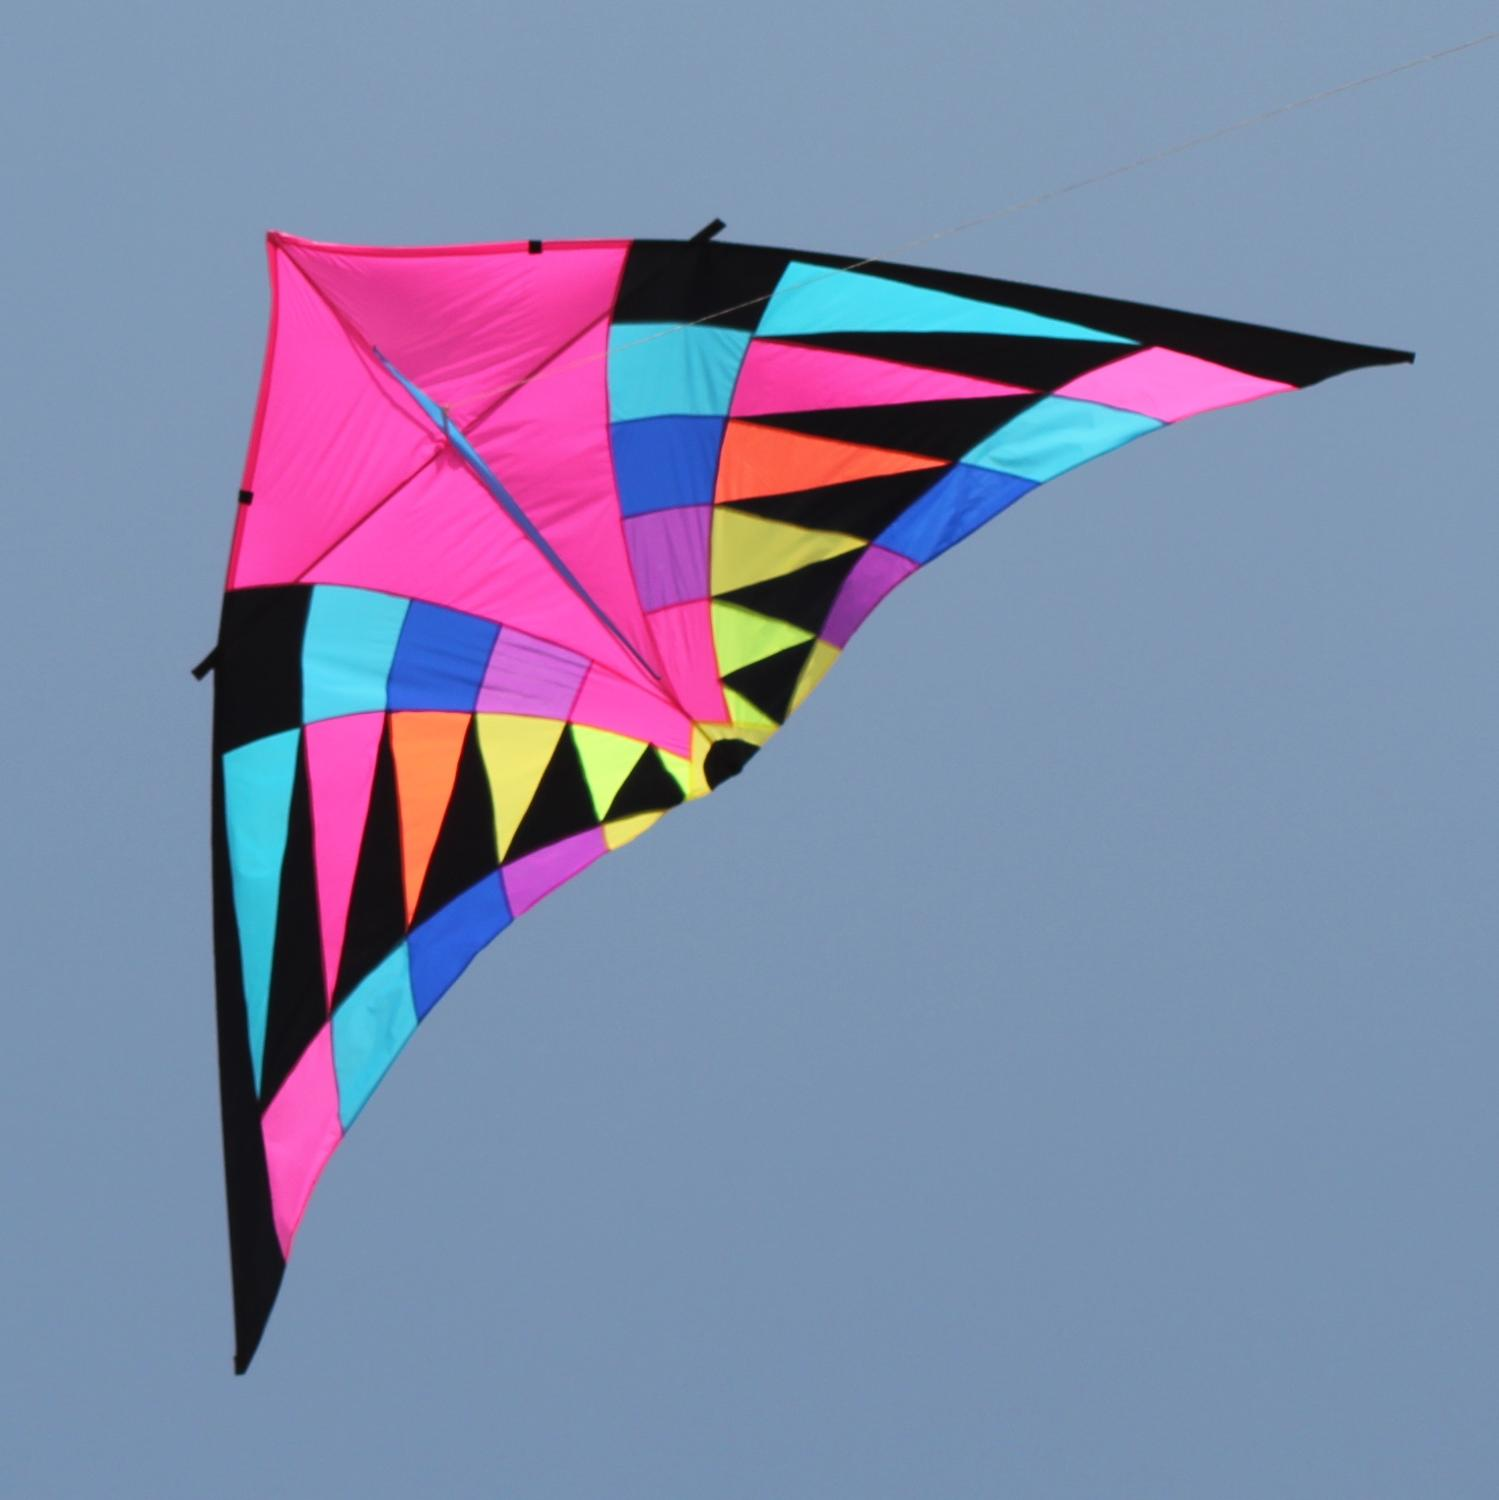 Free Shipping Large Rainbow Kite Windsock Delta Handle Line Ripstop Nylon Fabric Kite Factory Surf Eagle Kite Flying Octopus Toy